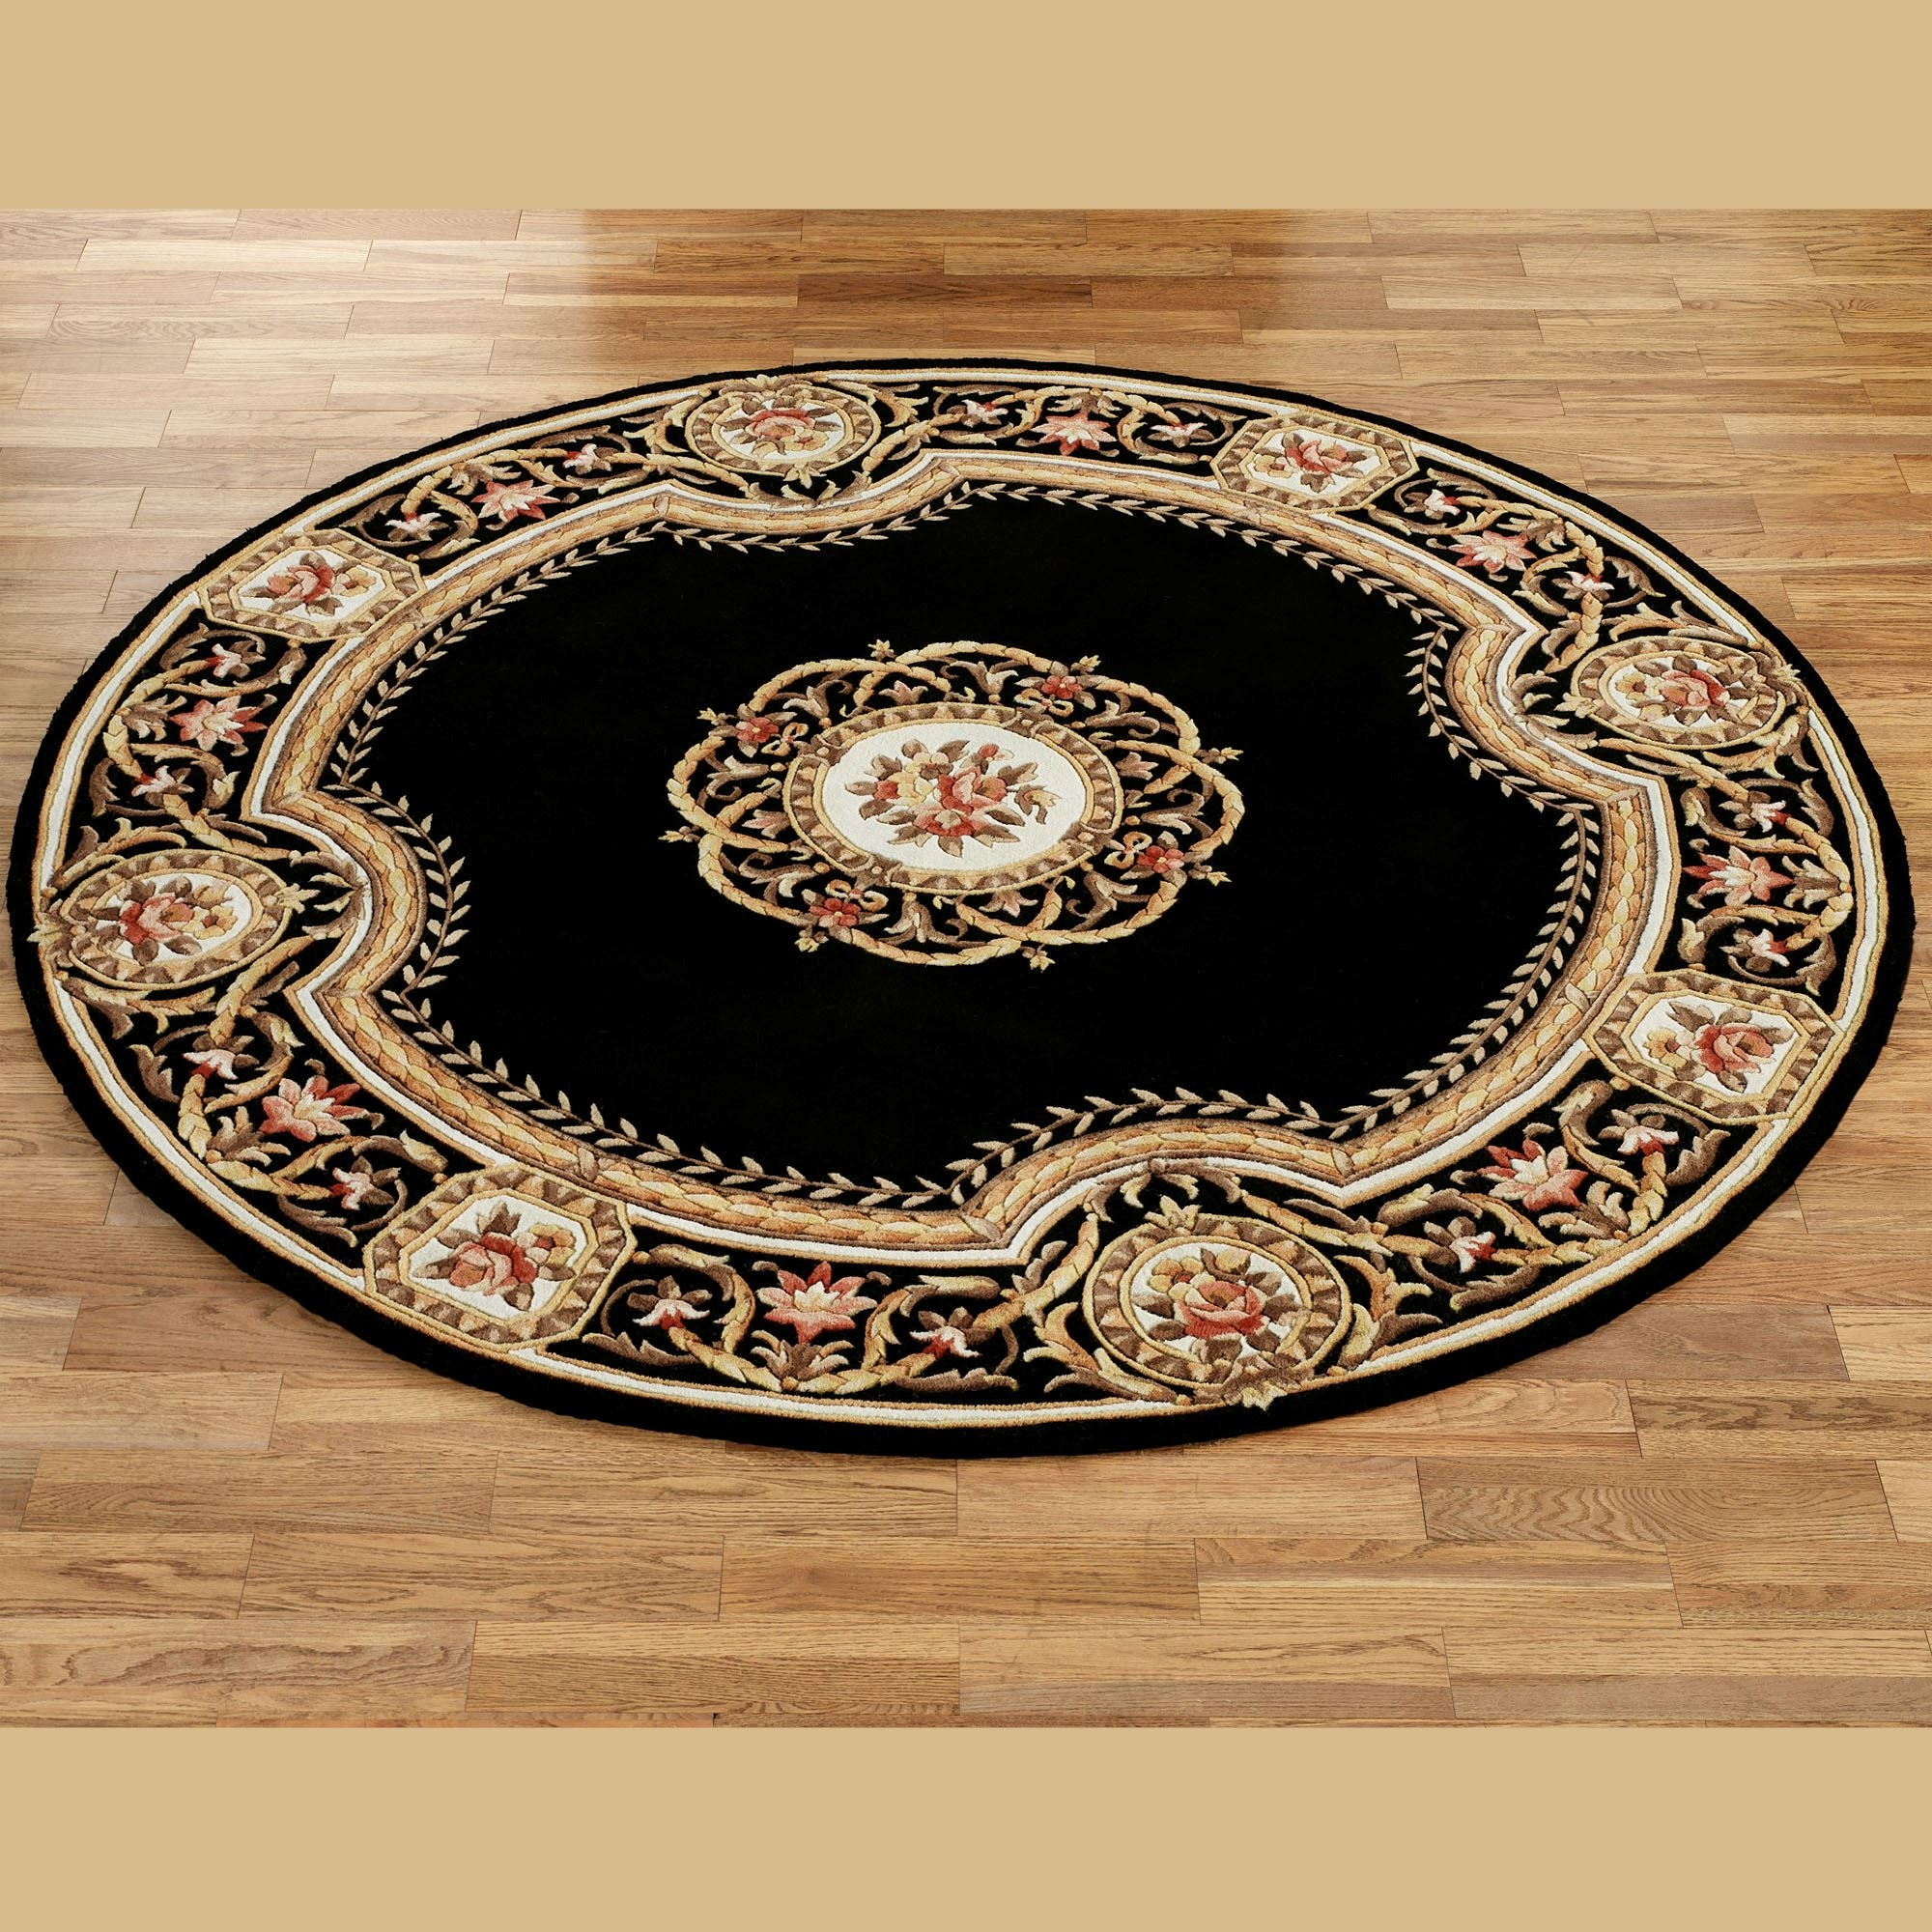 Elegant Medallion Round Wool Area Rugs With Regard To Round Wool Rugs (Image 6 of 15)